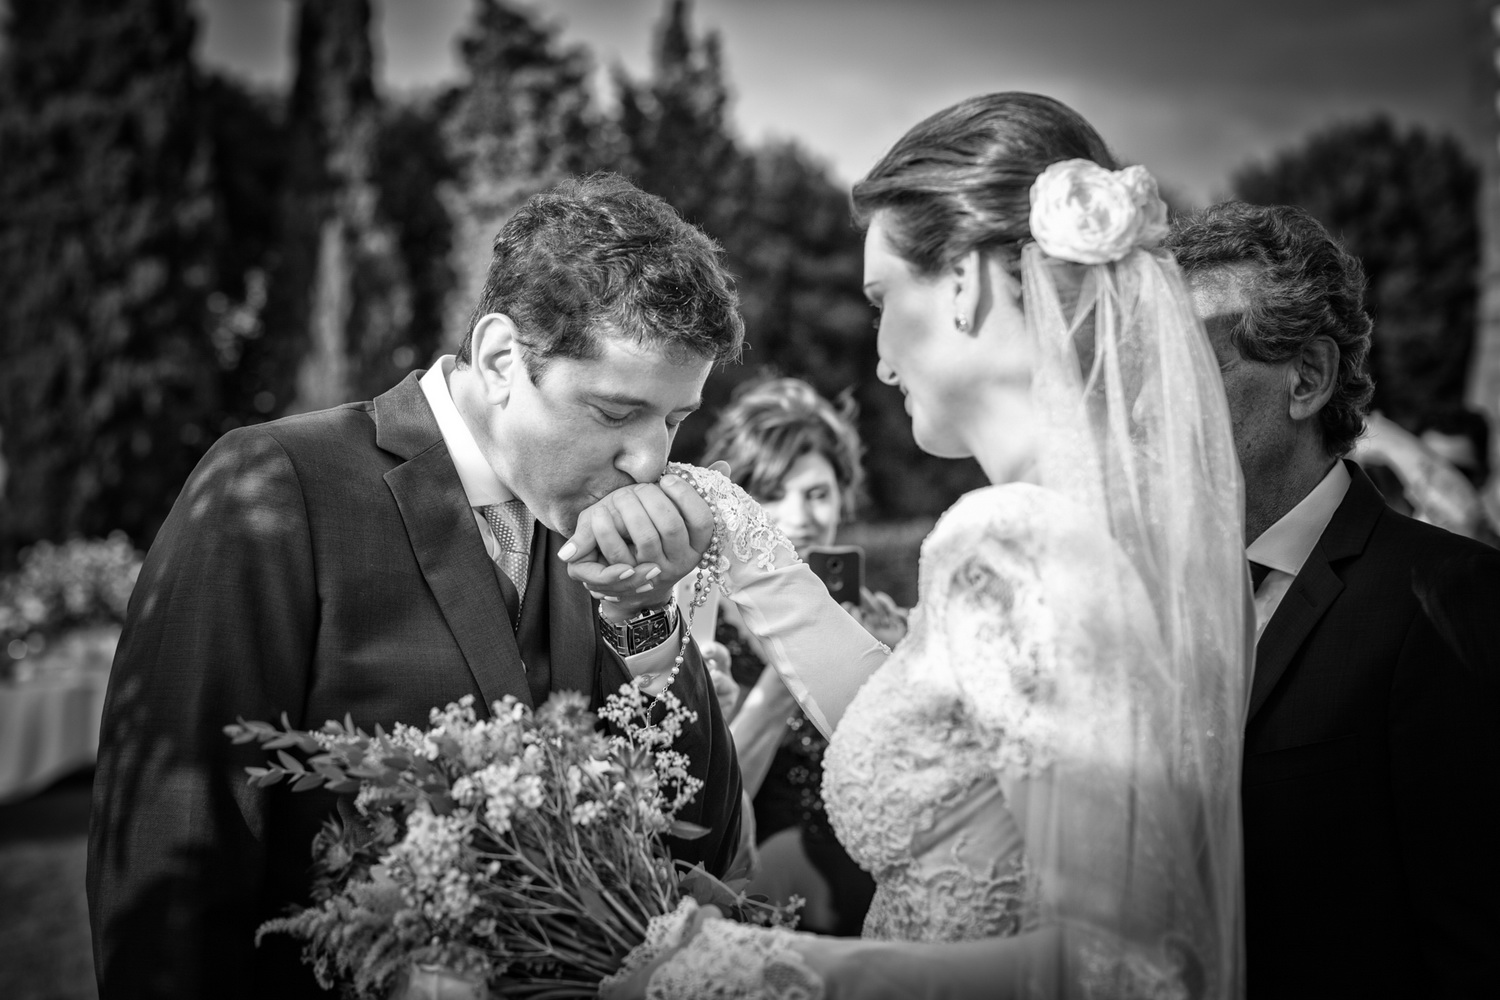 Destination Wedding Toscana | Caroline e Fernando destination wedding na toscana | caroline e fernando Destination Wedding na Toscana | Caroline e Fernando marco zammarchi destination wedding 18